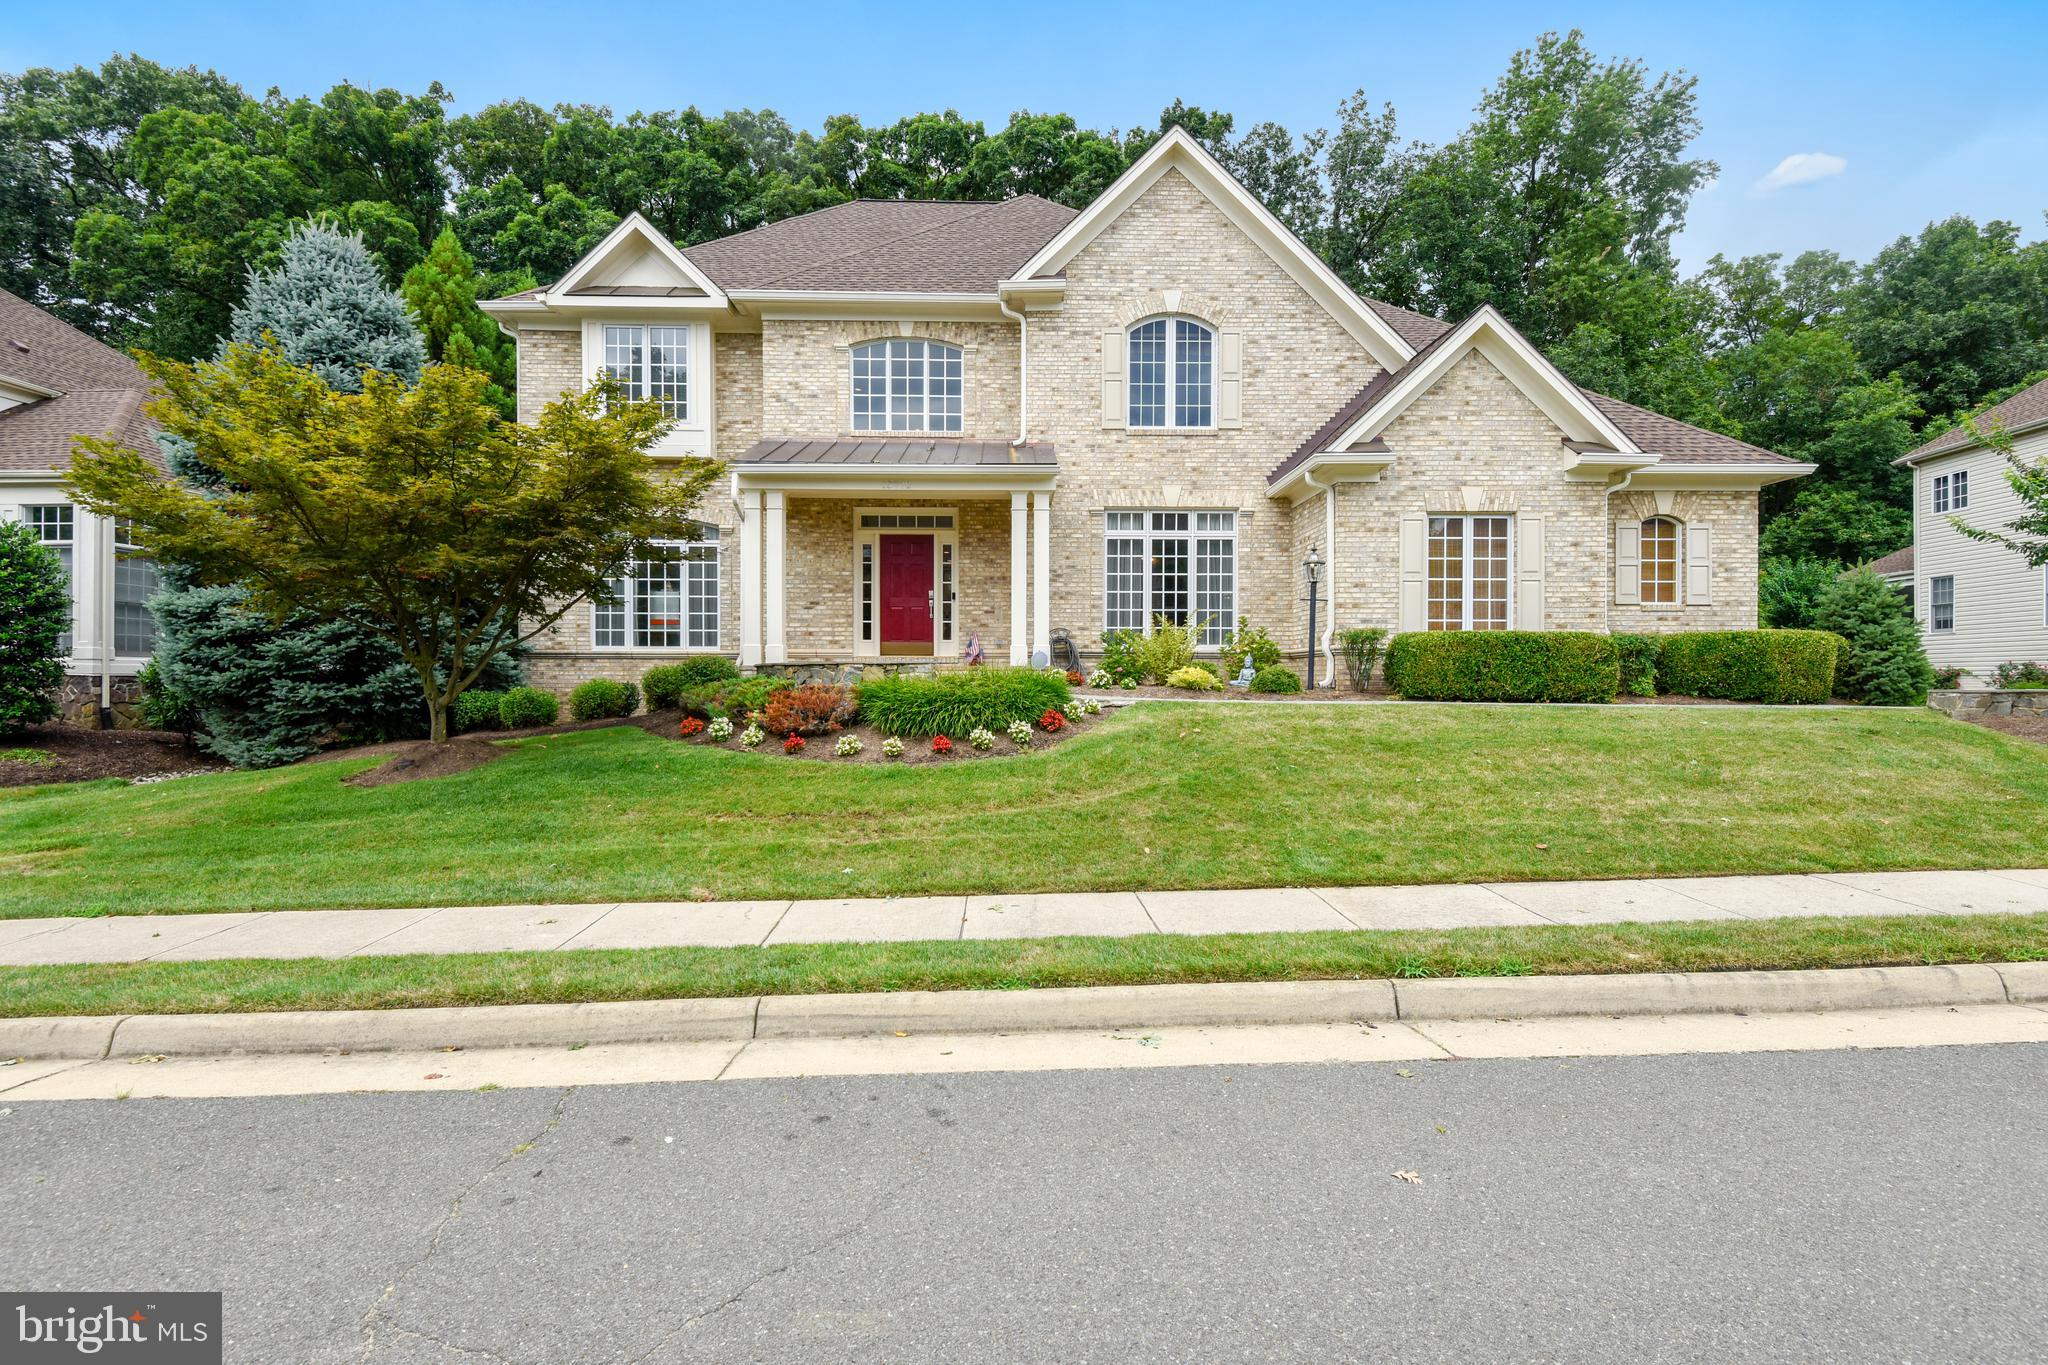 13772 HENRY POND COURT, CHANTILLY, VA 20151